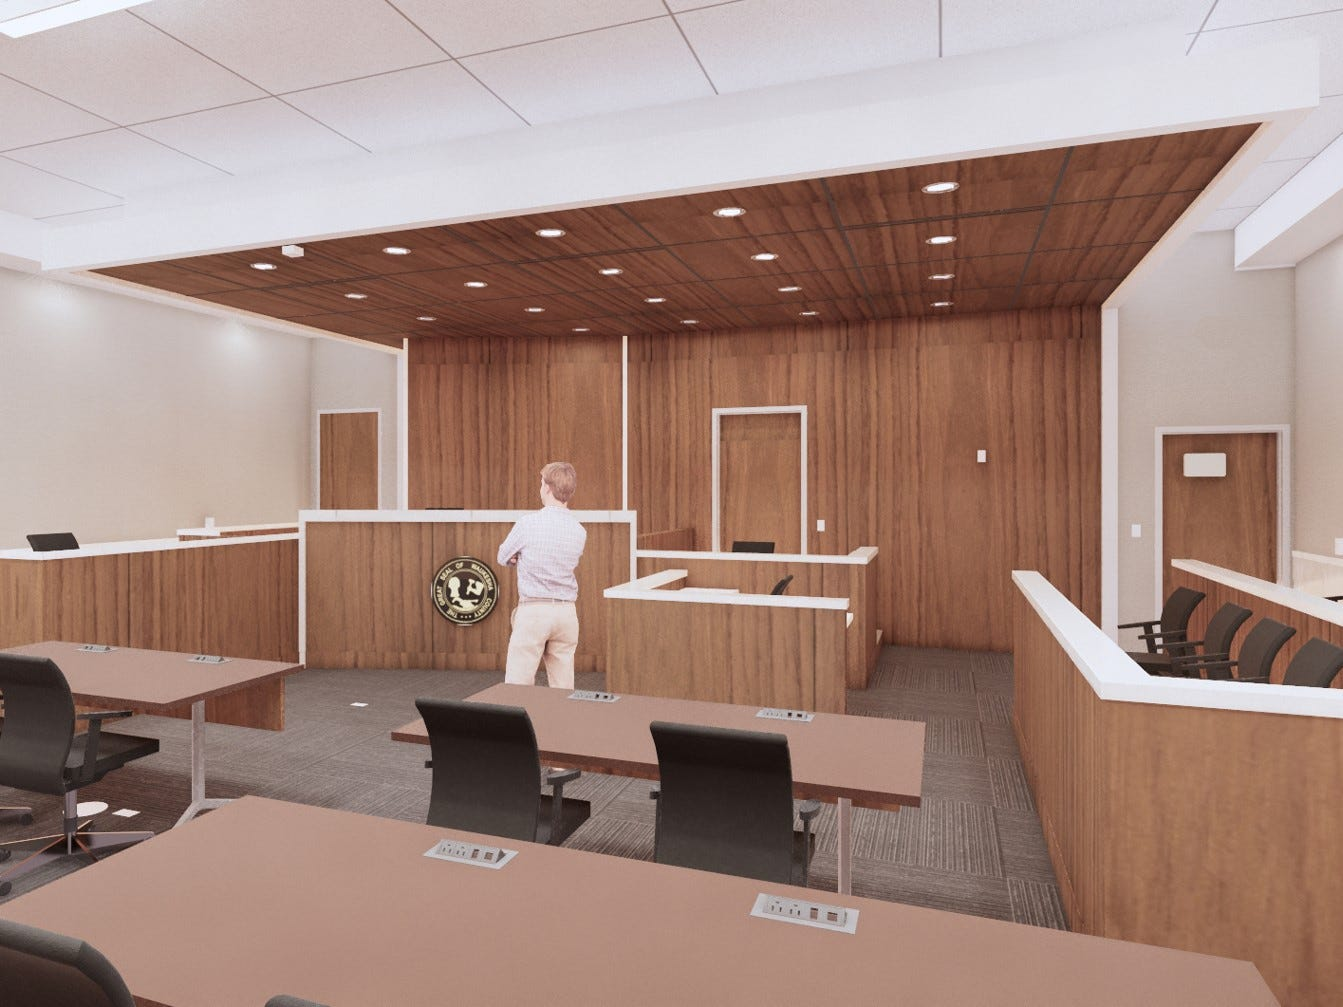 This rendering shows an example of what one of the eight new courtrooms at the Waukesha County Courthouse might look like once construction is complete in 2021. This view faces the bench, with the jury seating to the right.